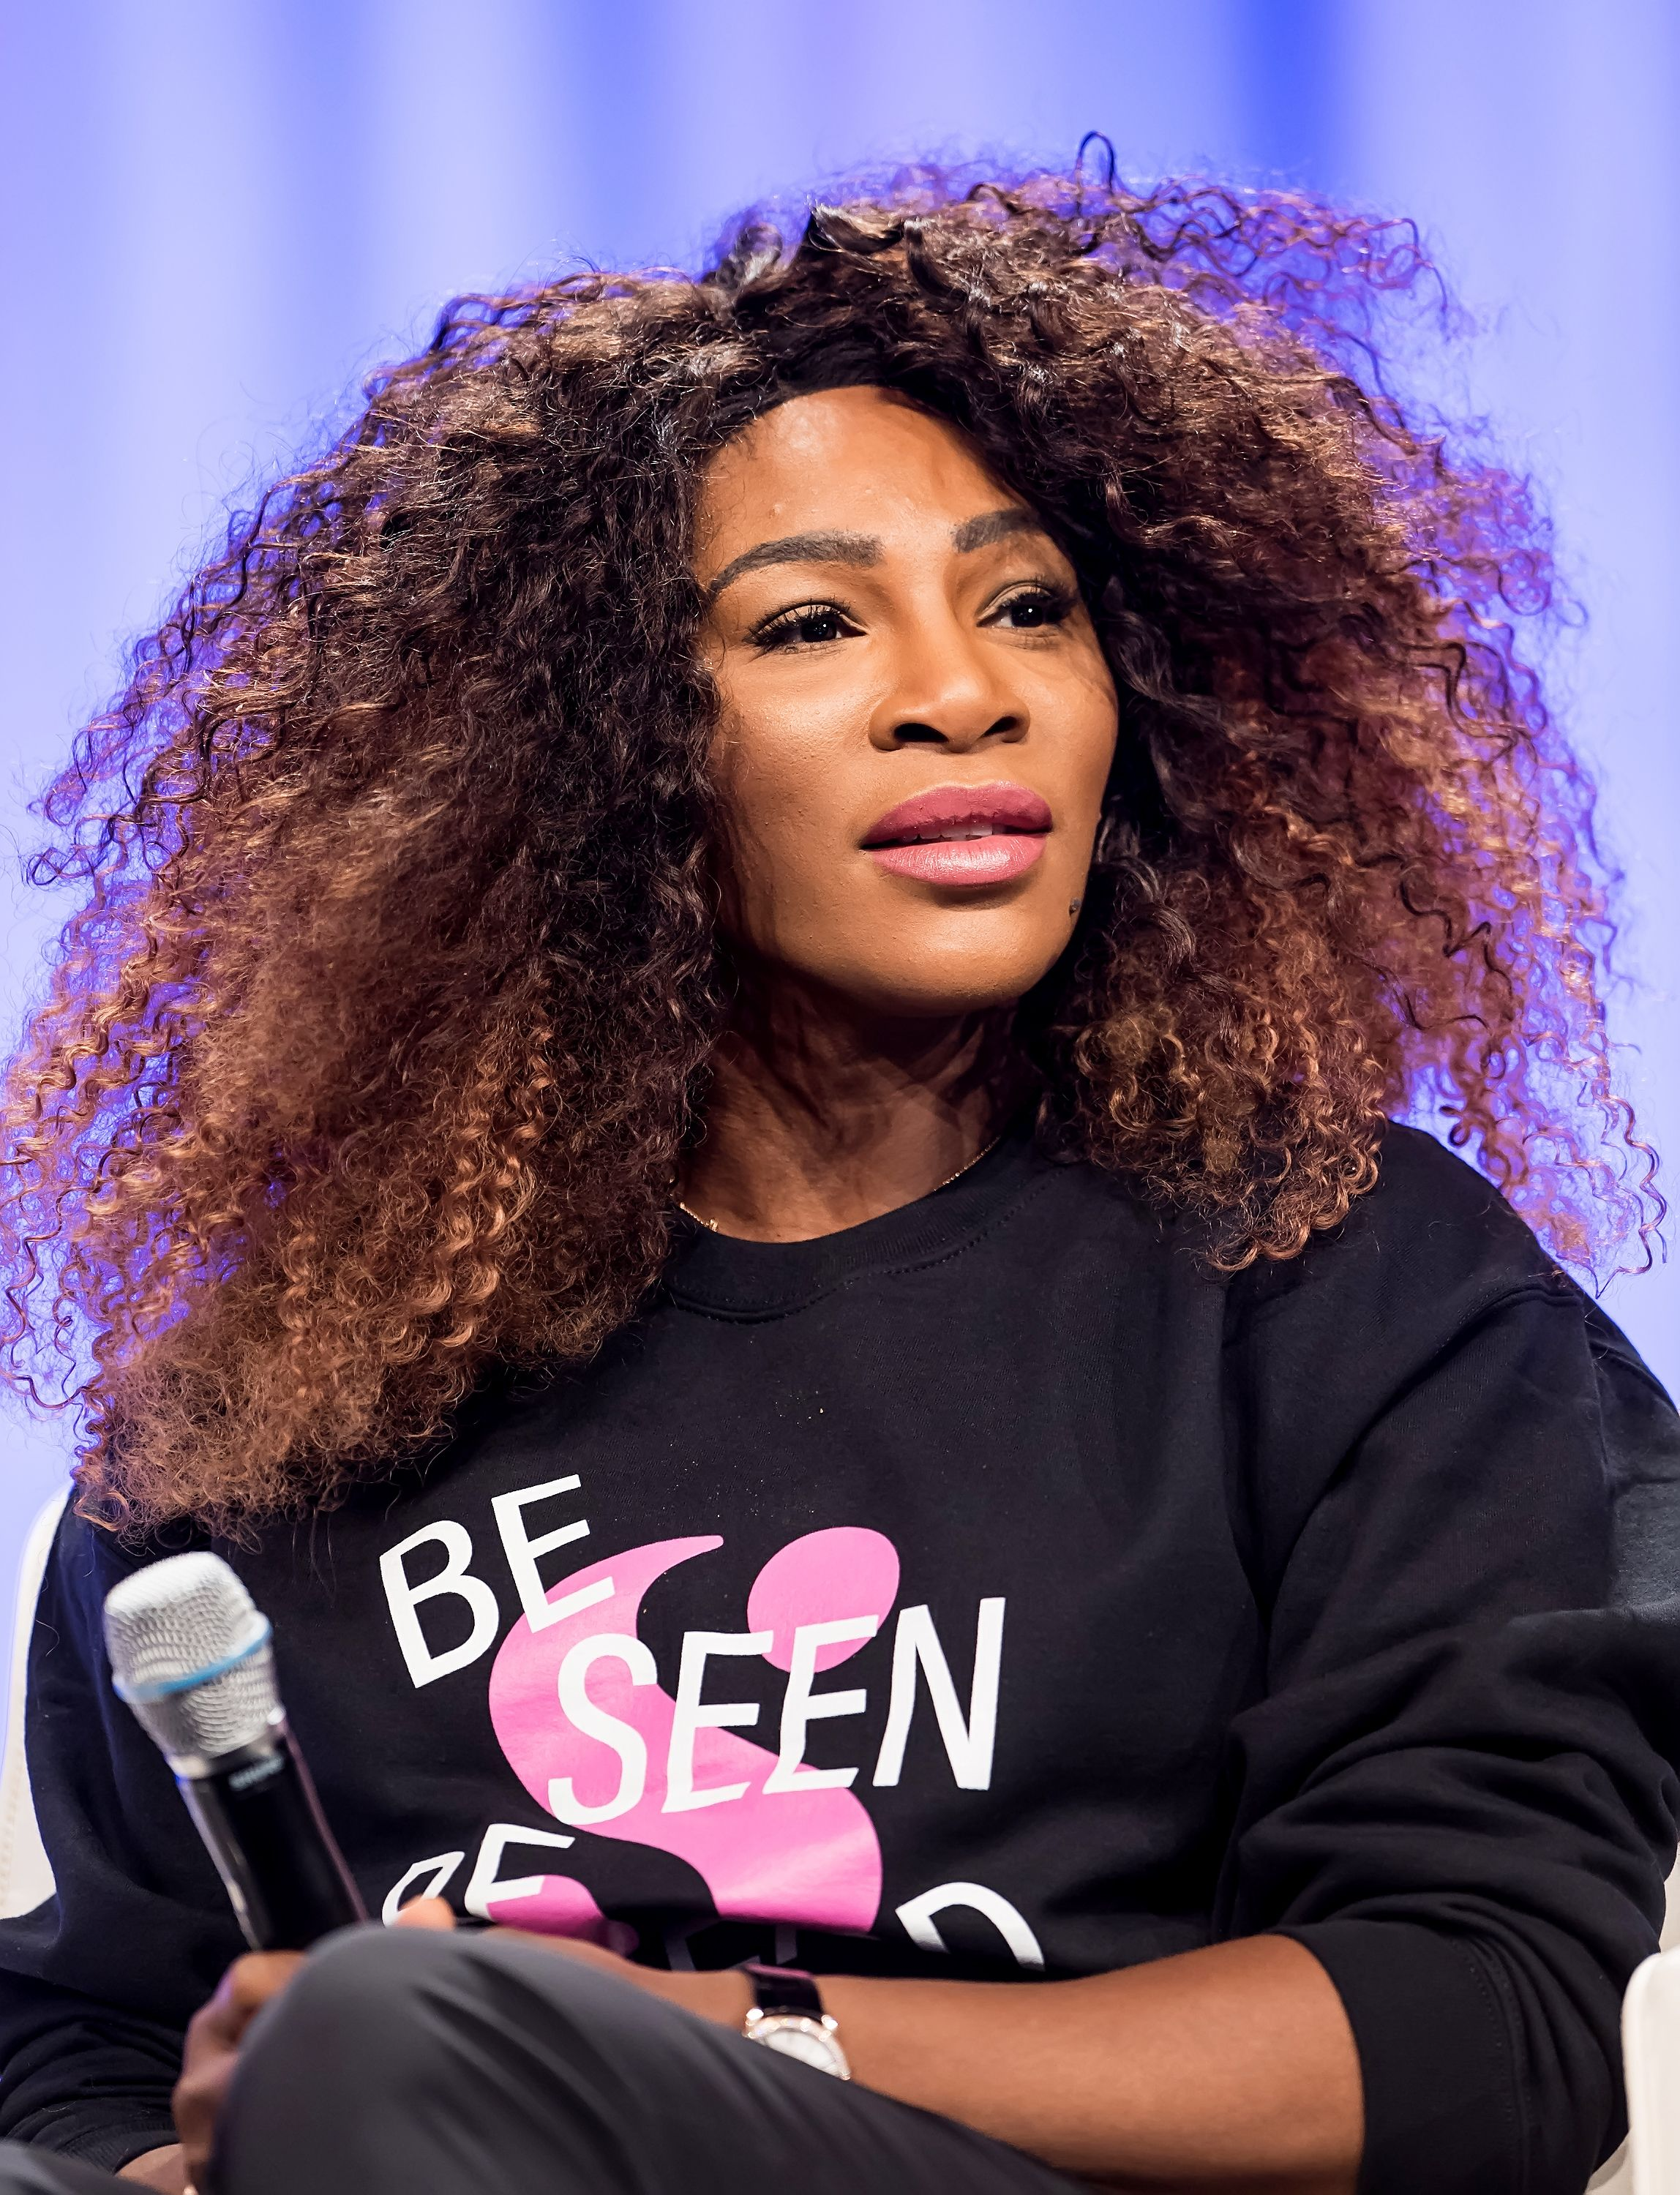 WYD, GQ? Serena Williams' Woman of the Year Cover Sparks Major Backlash